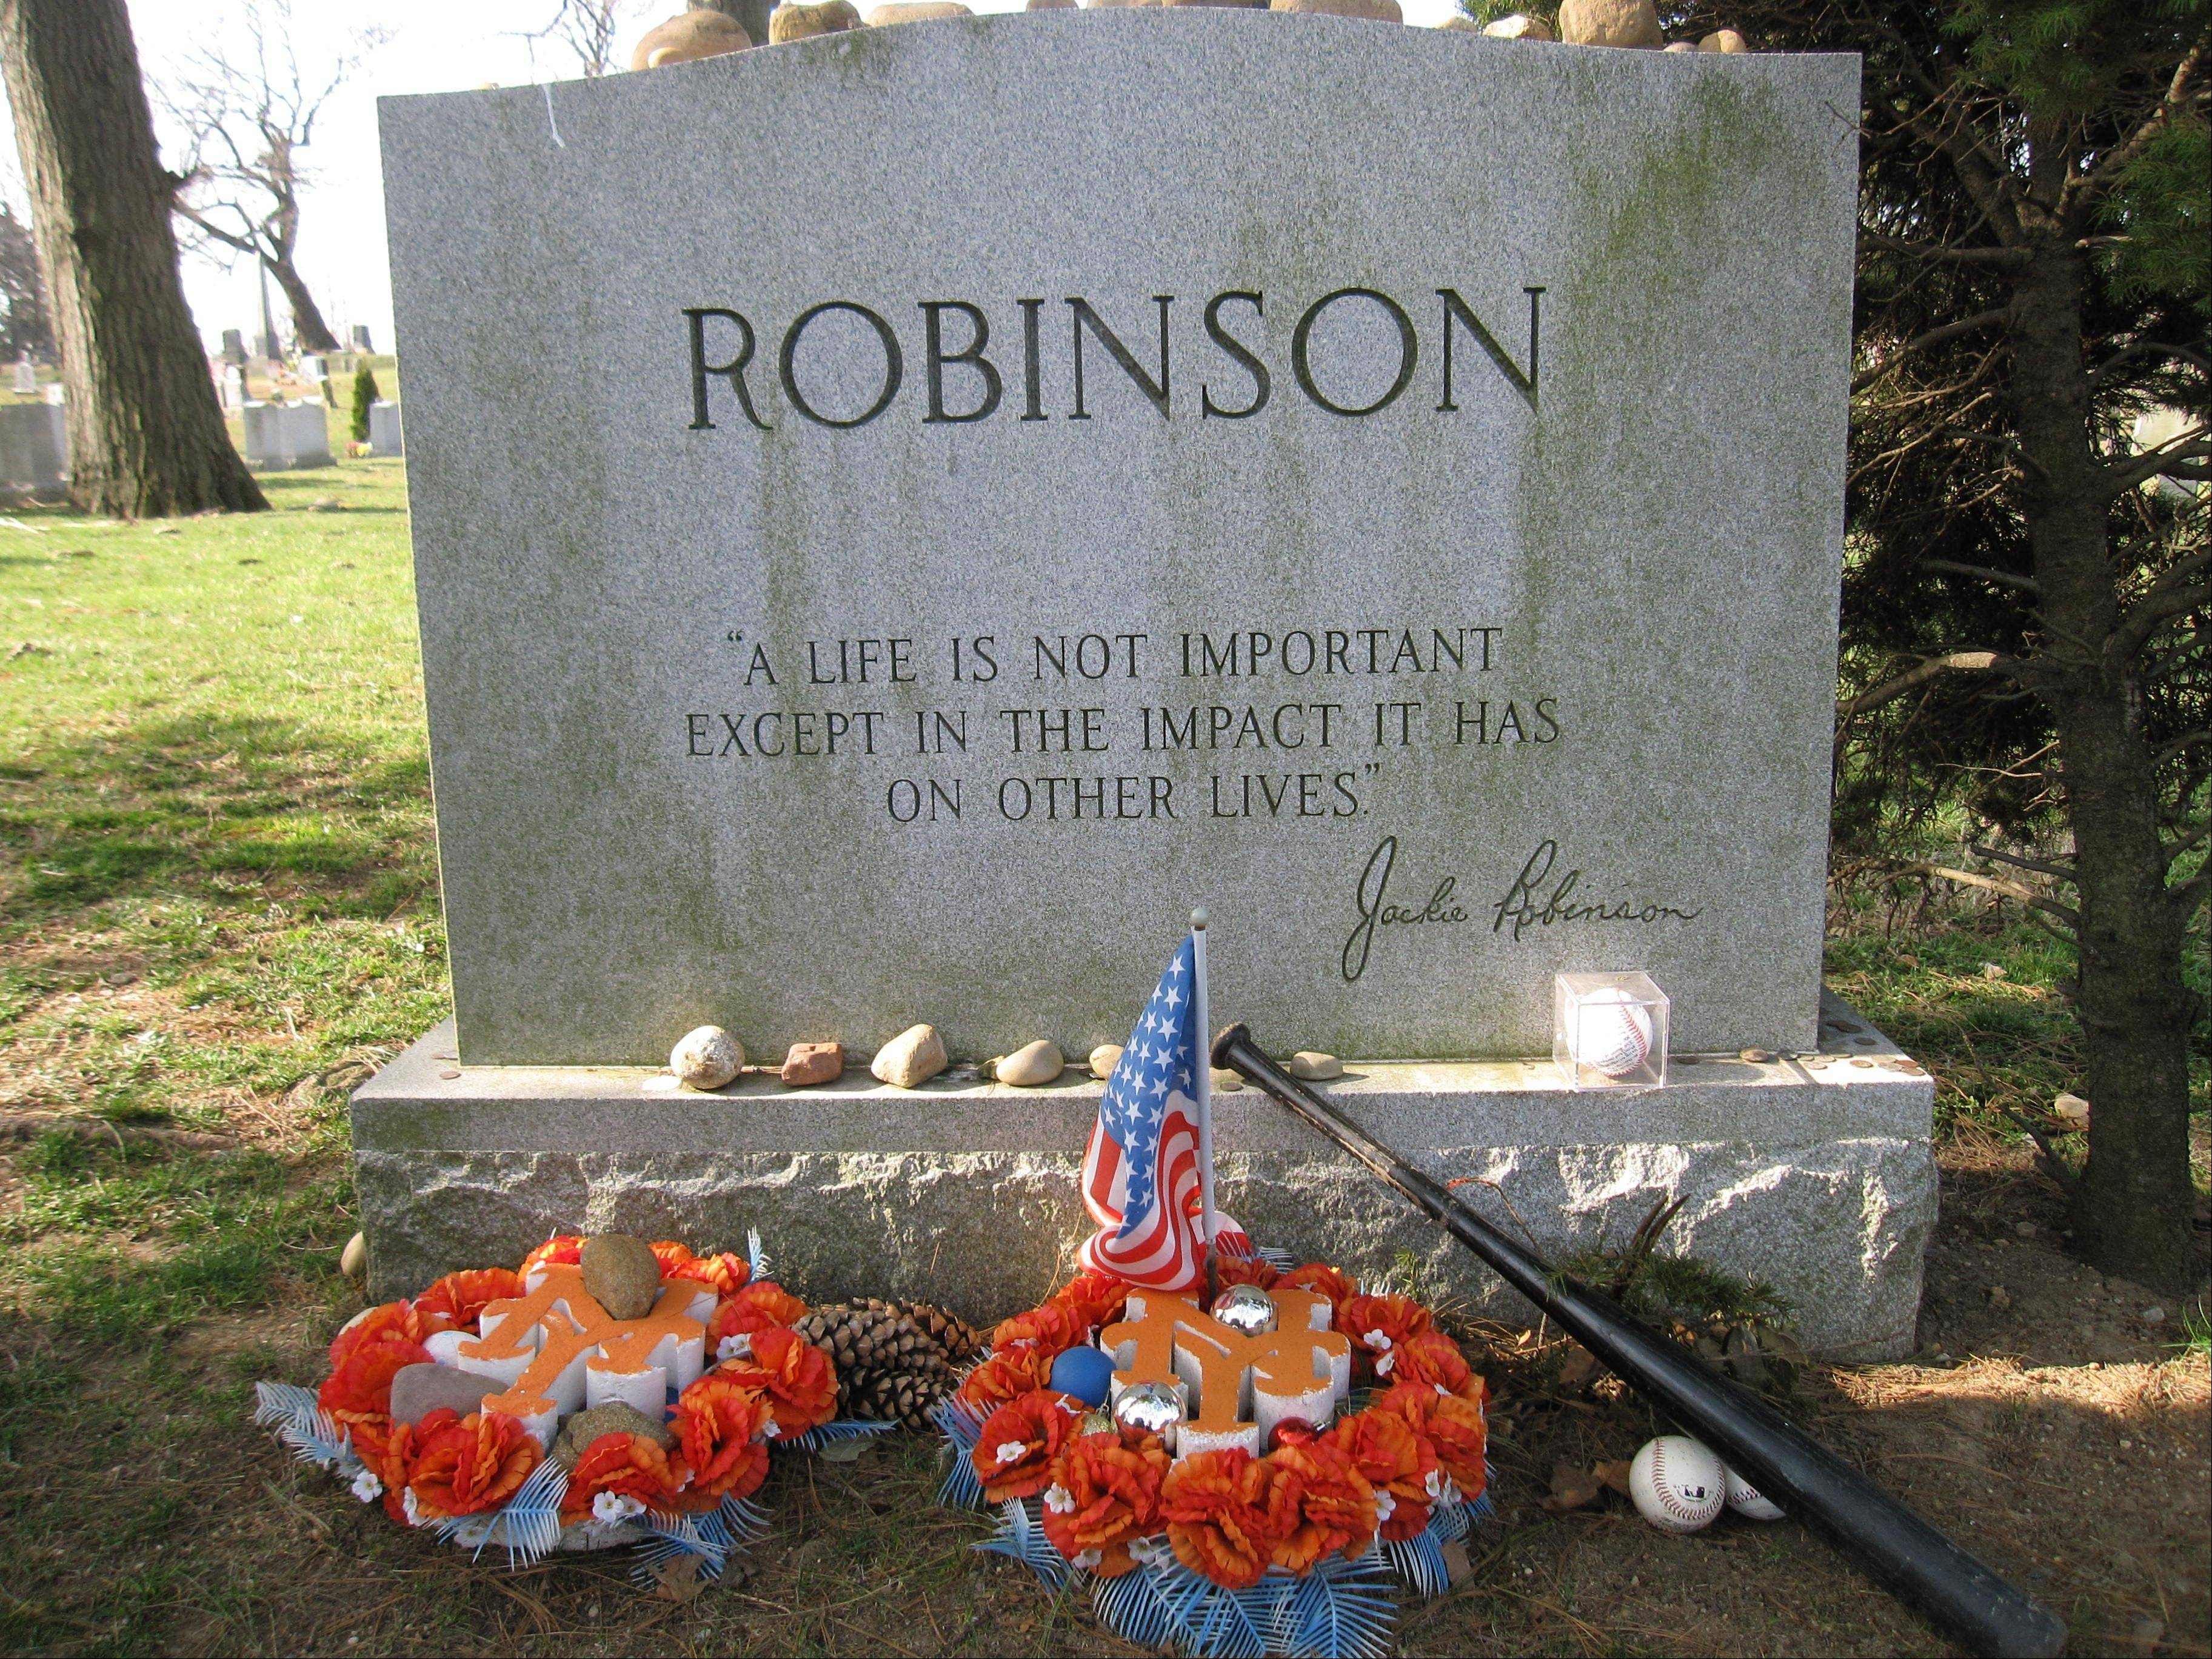 Jackie Robinson's gravesite, where fans still leave tributes to the man who integrated Major League Baseball when he joined the Brooklyn Dodgers in 1947.